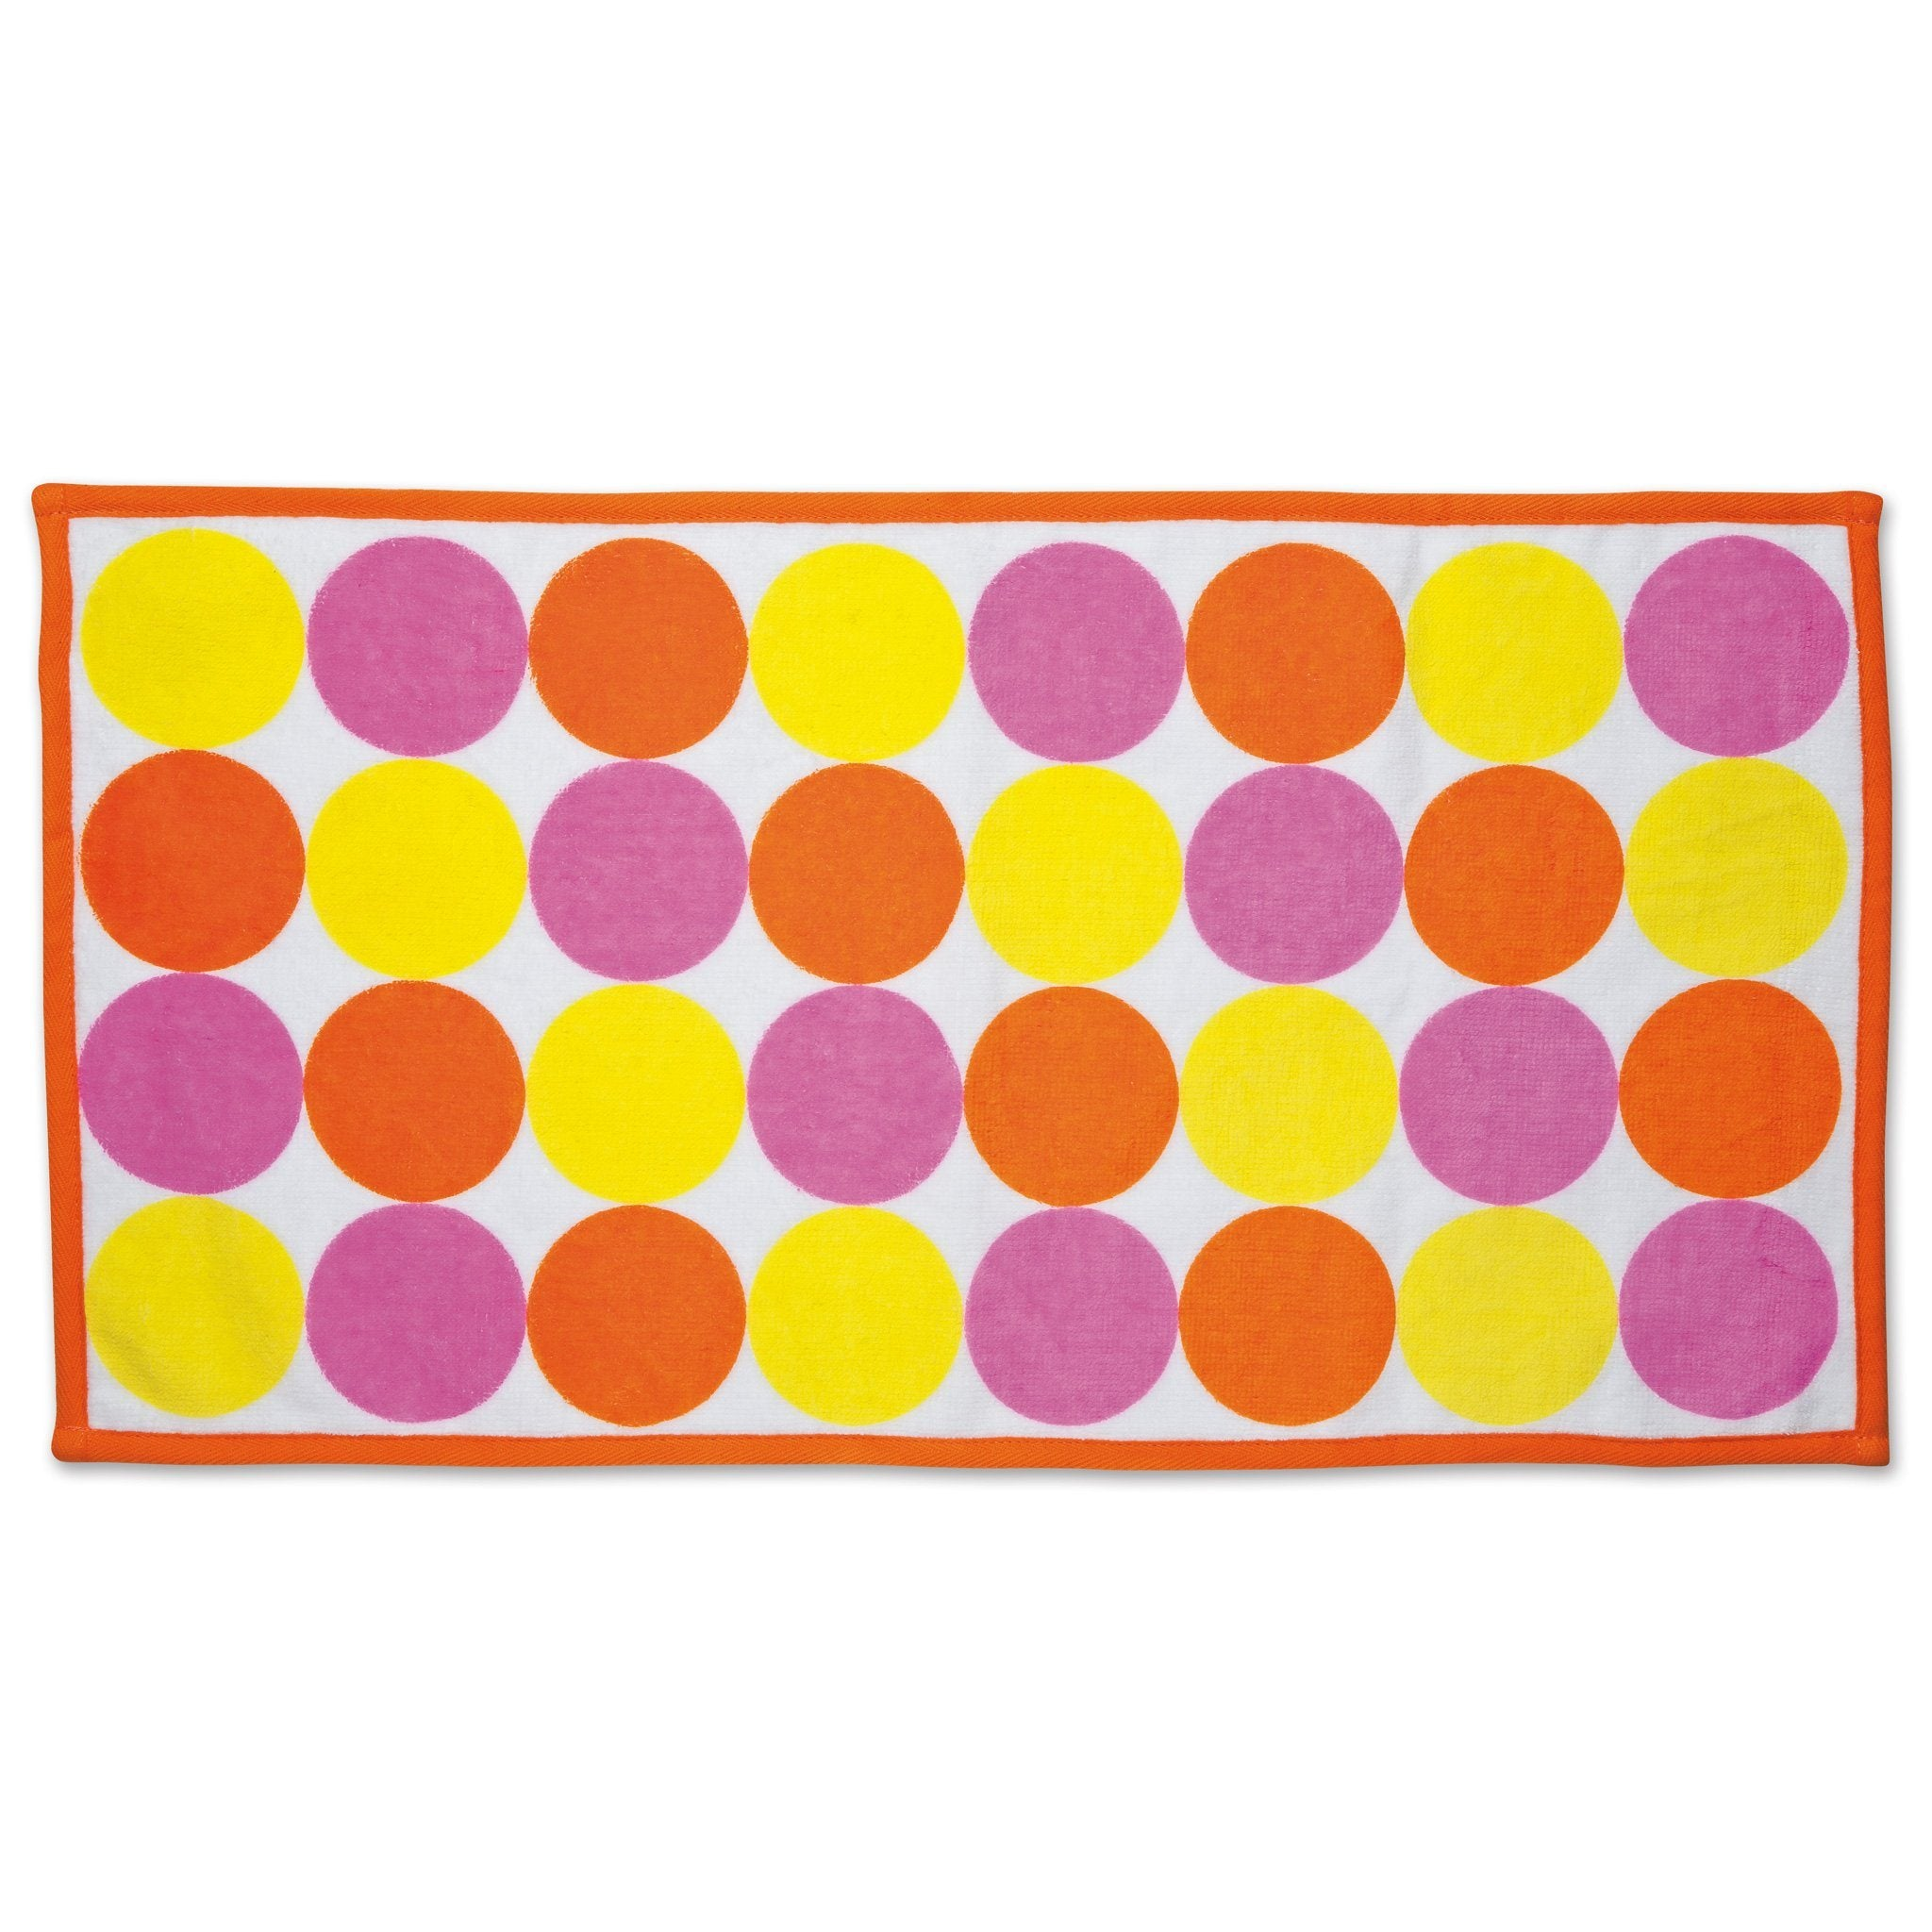 Shoreline Sun yellow, orange and pink polka dot towel fits all 18 inch dolls.